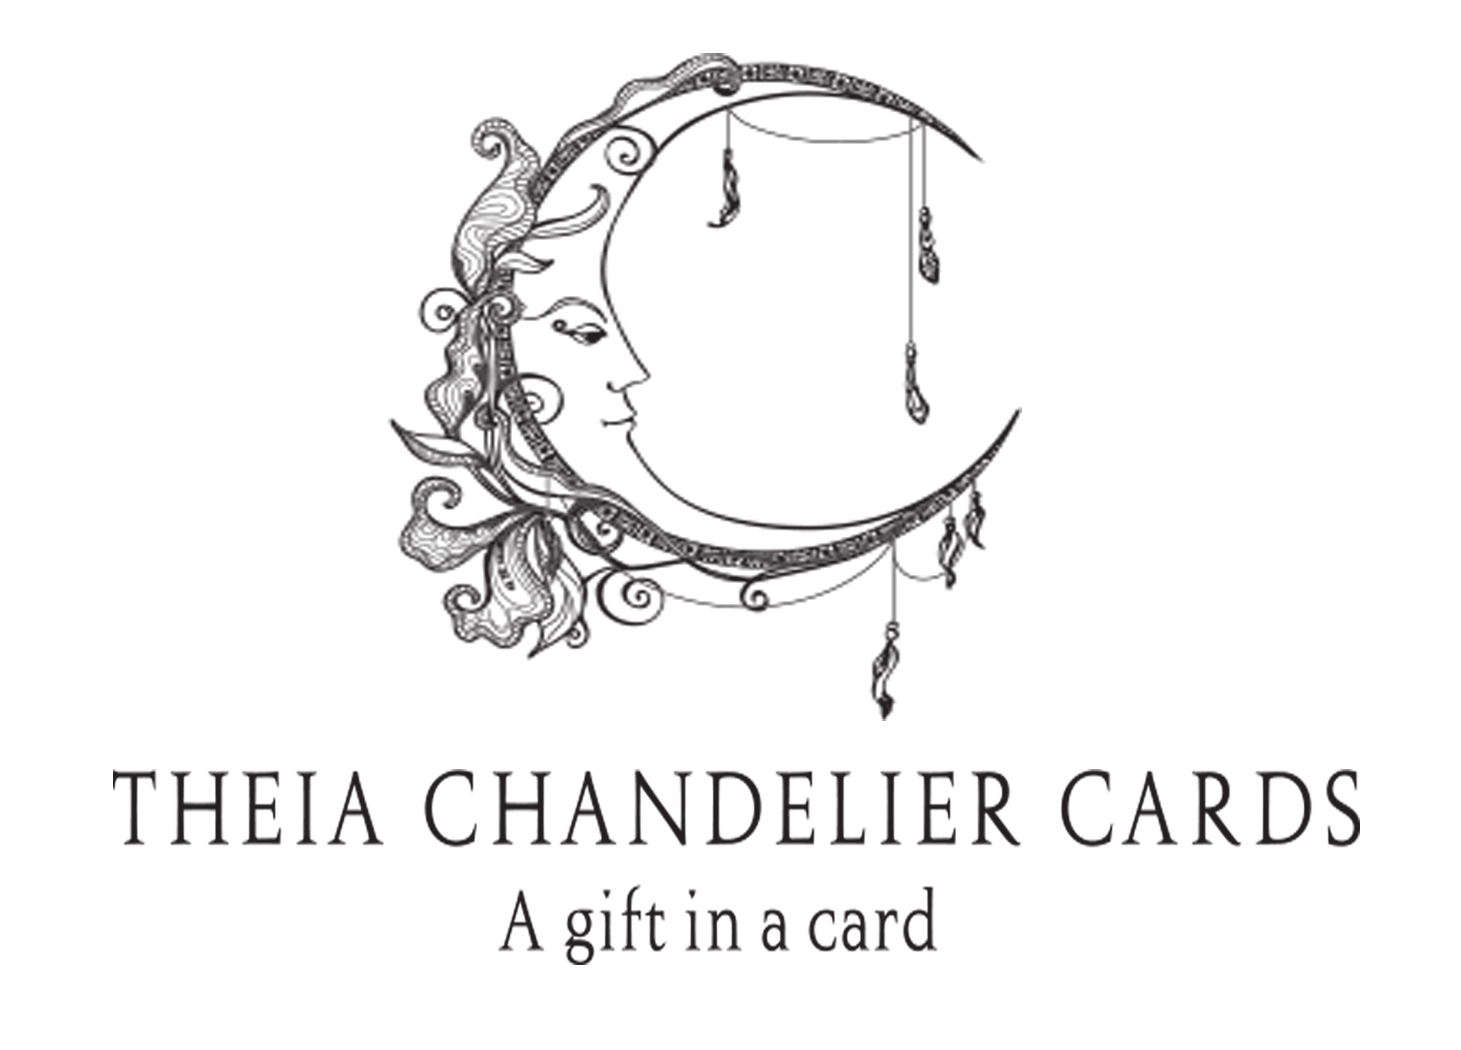 logo theia chandelier cards reversed.jpg